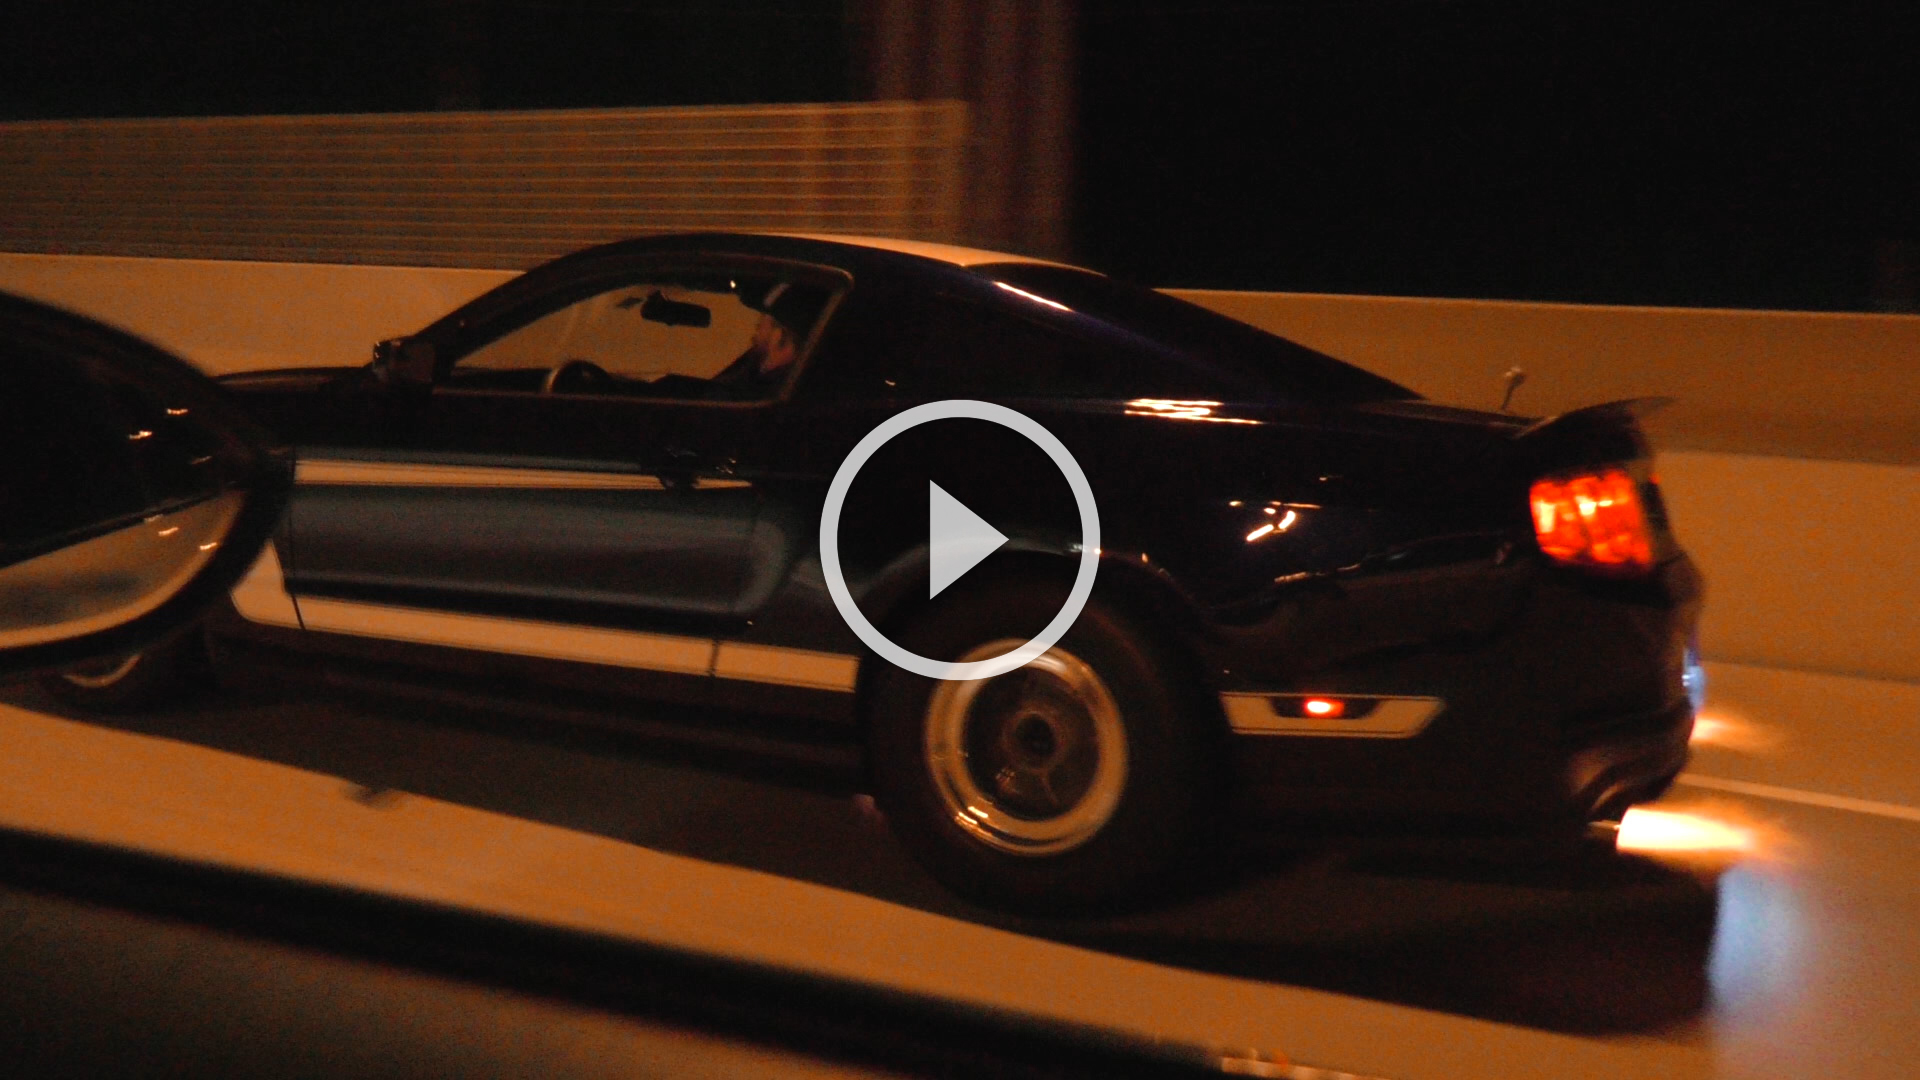 Street Racing - Blown BMW M3 vs. Mustangs